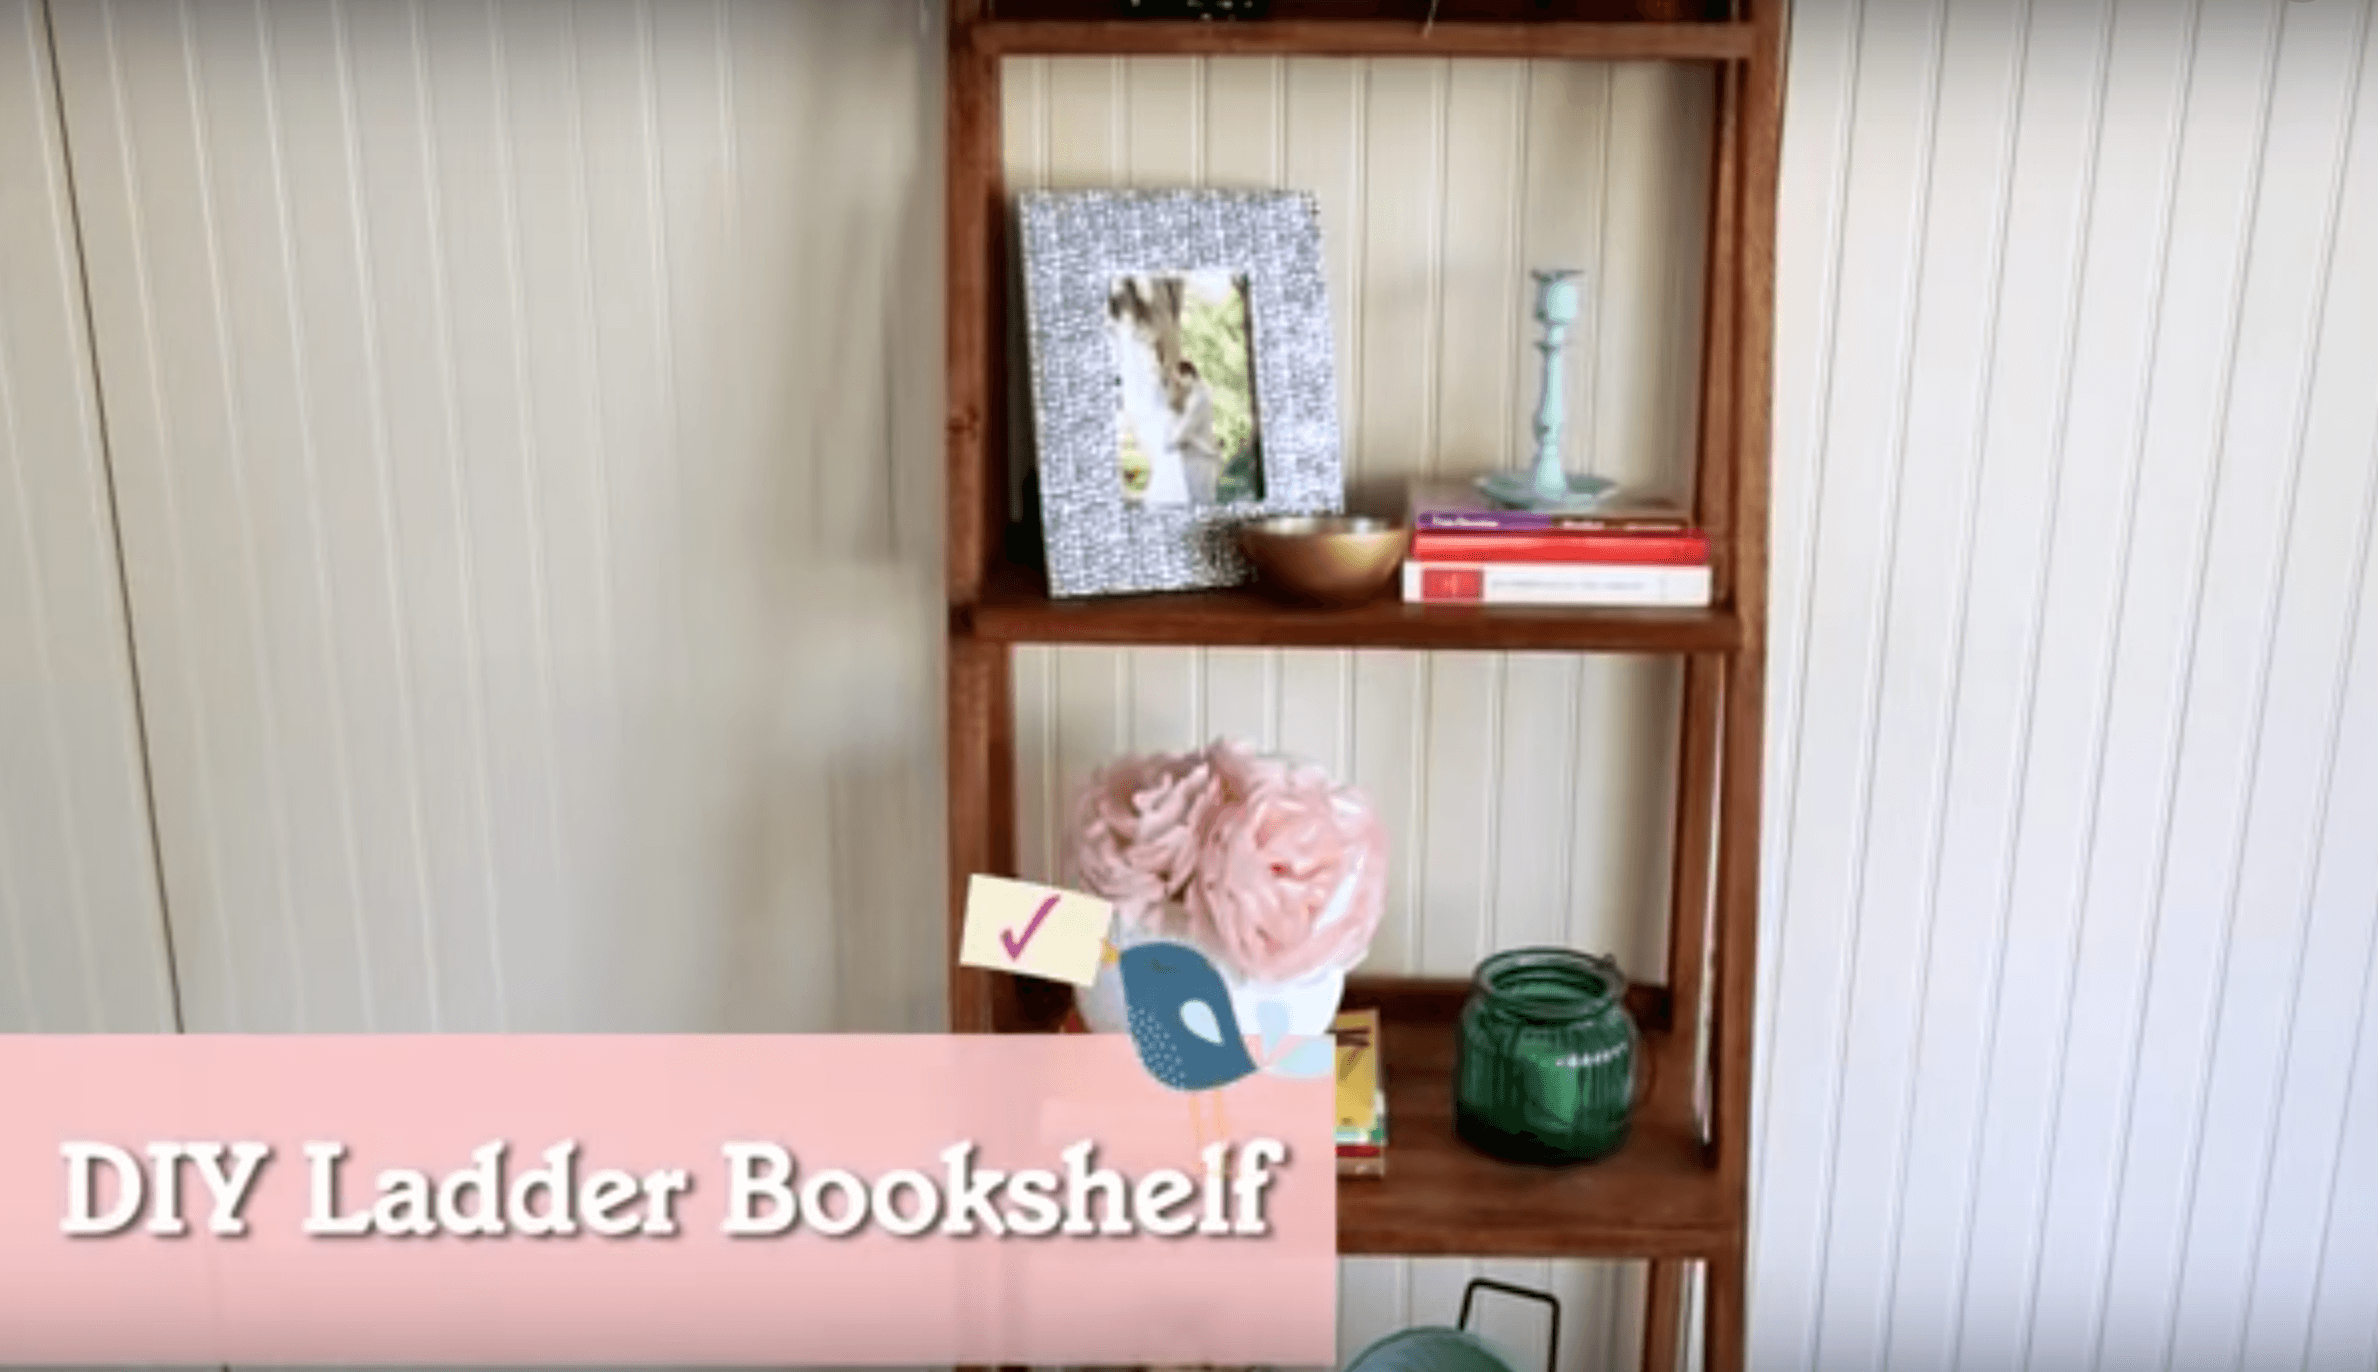 How to Make a Ladder Bookshelf